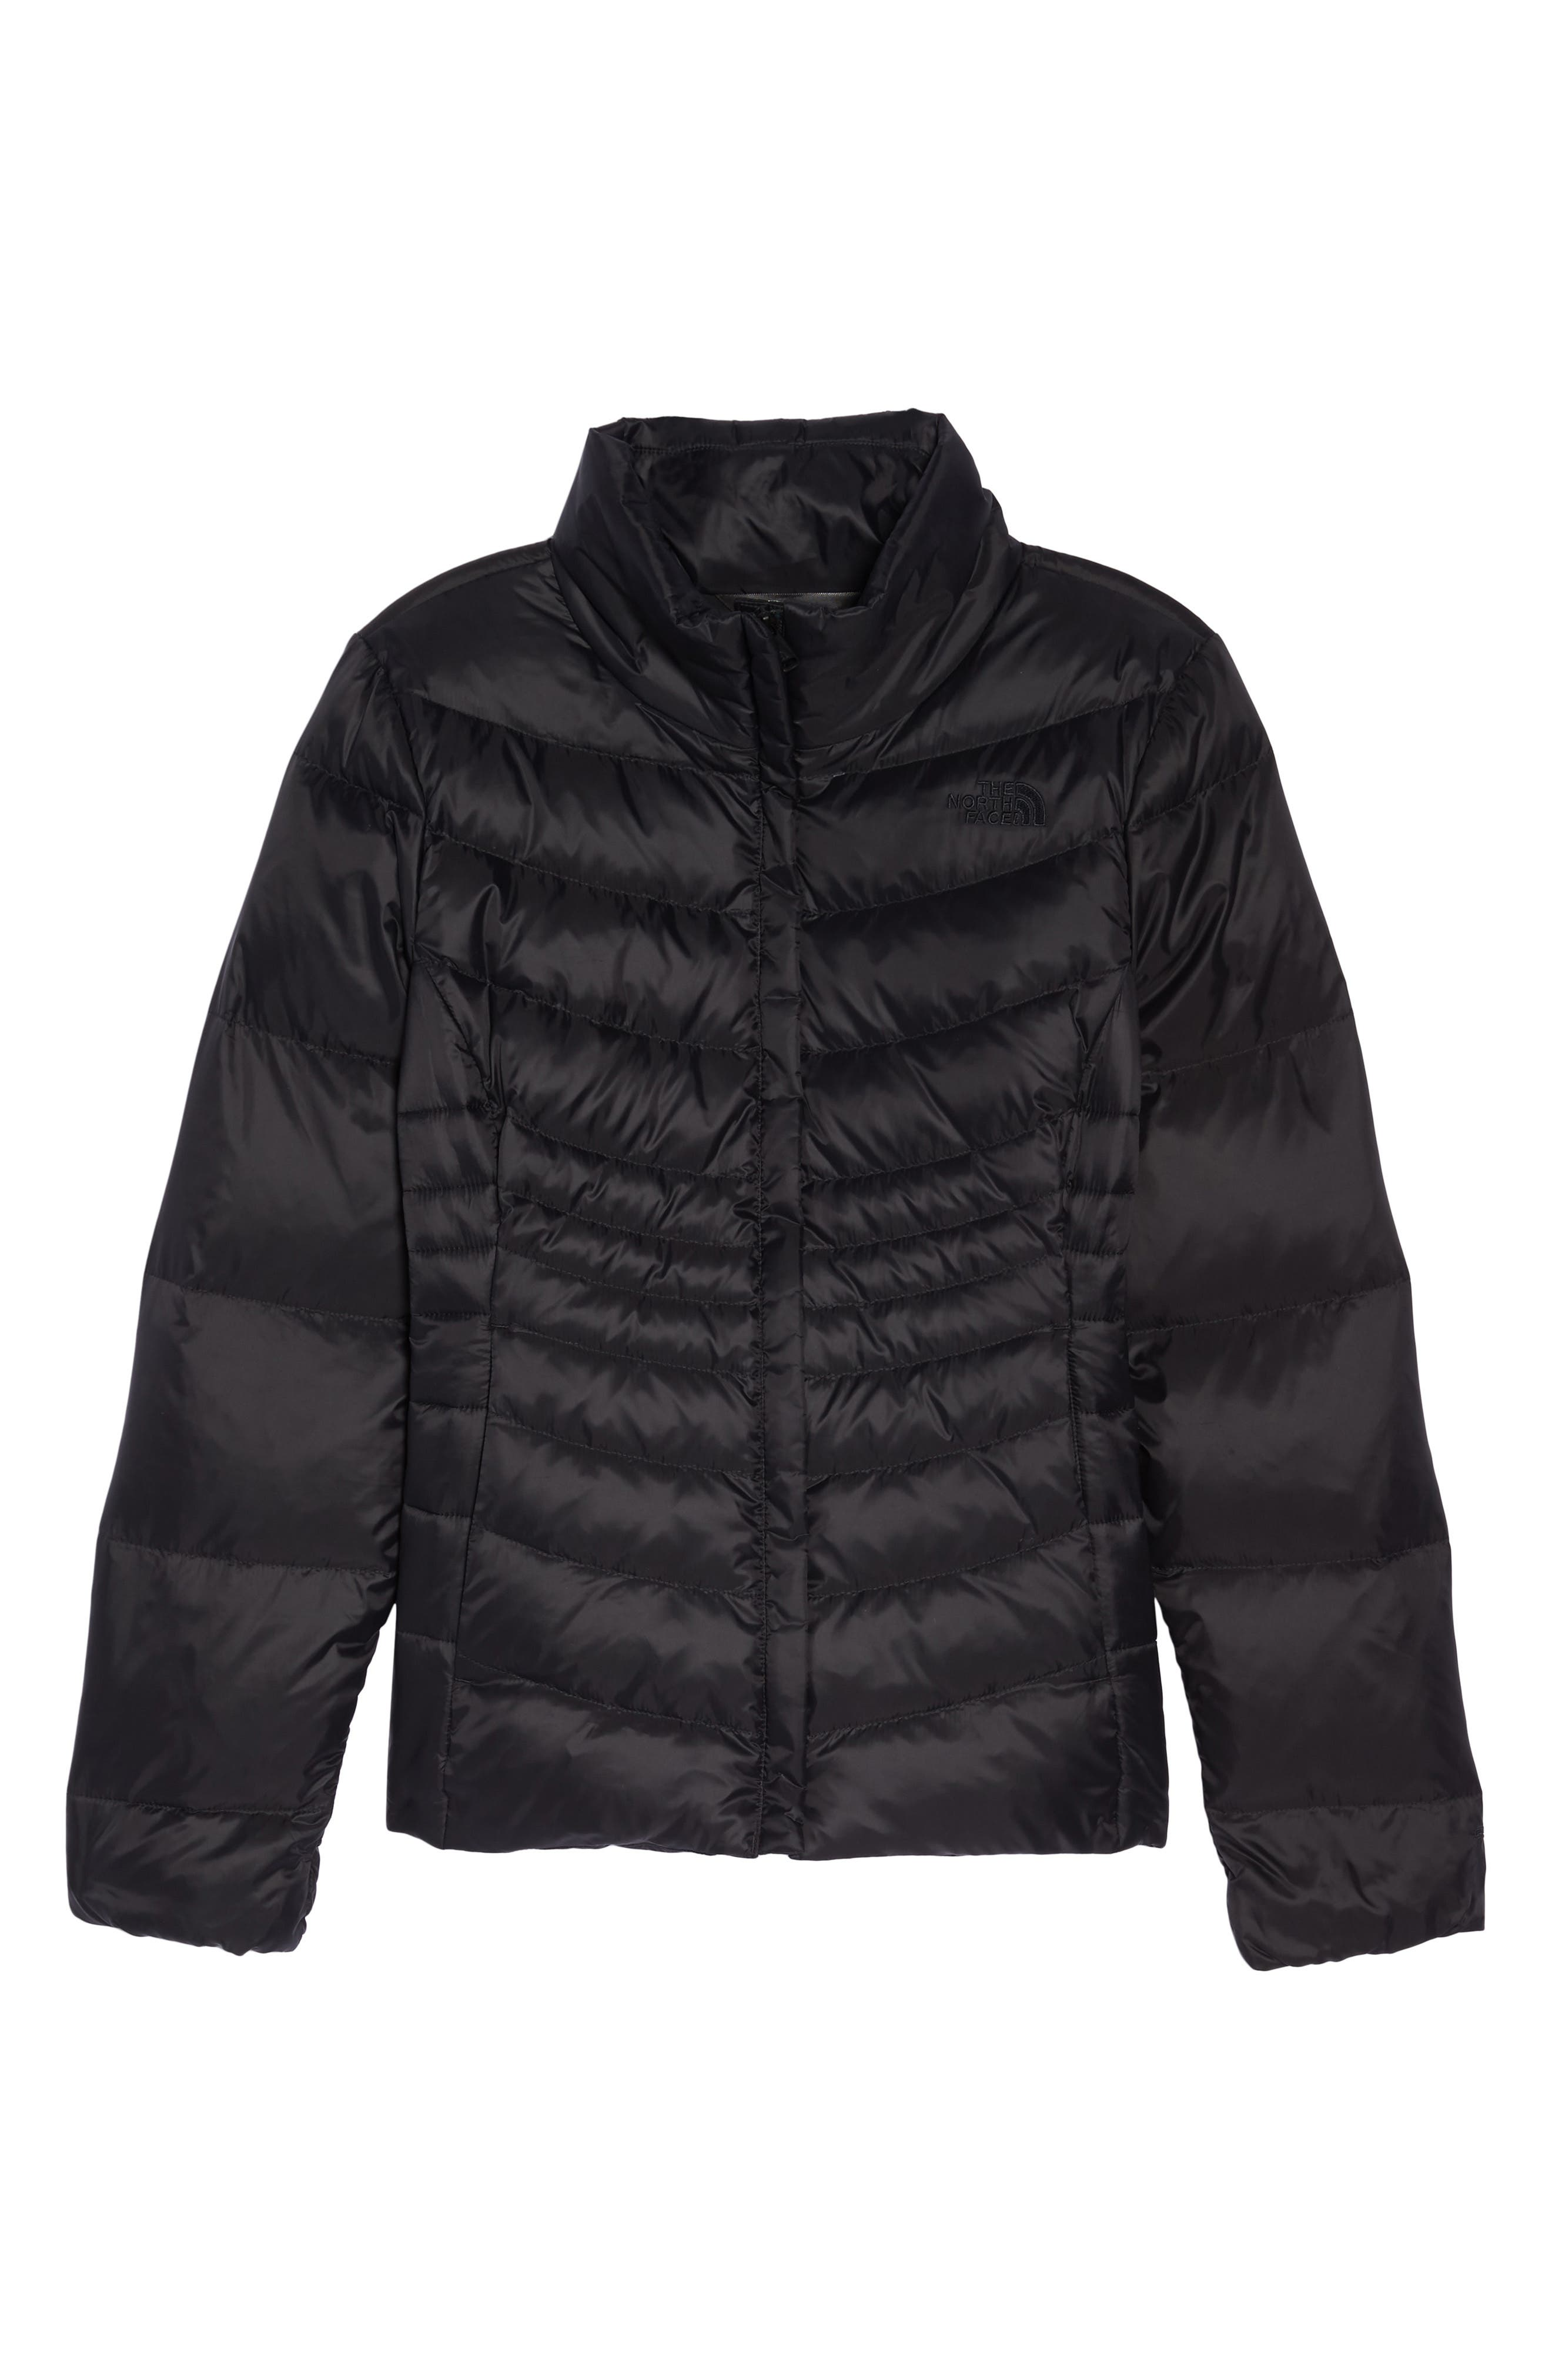 THE NORTH FACE,                             Aconcagua II Down Jacket,                             Alternate thumbnail 6, color,                             001